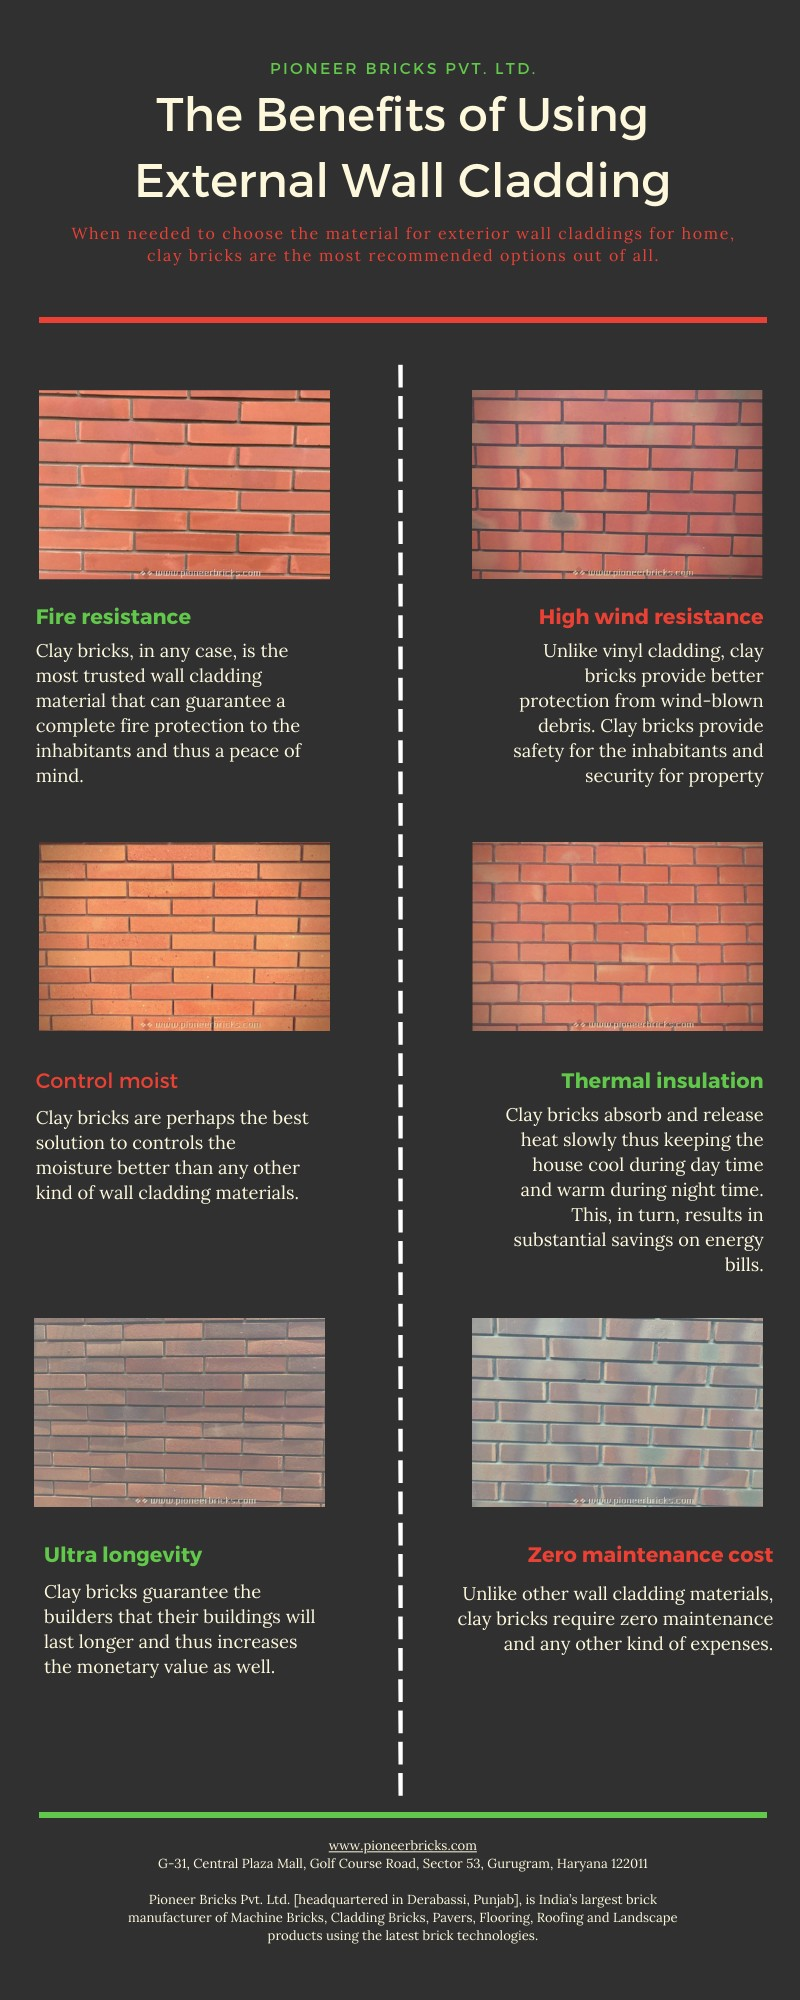 Why Buy Wall Cladding Tiles